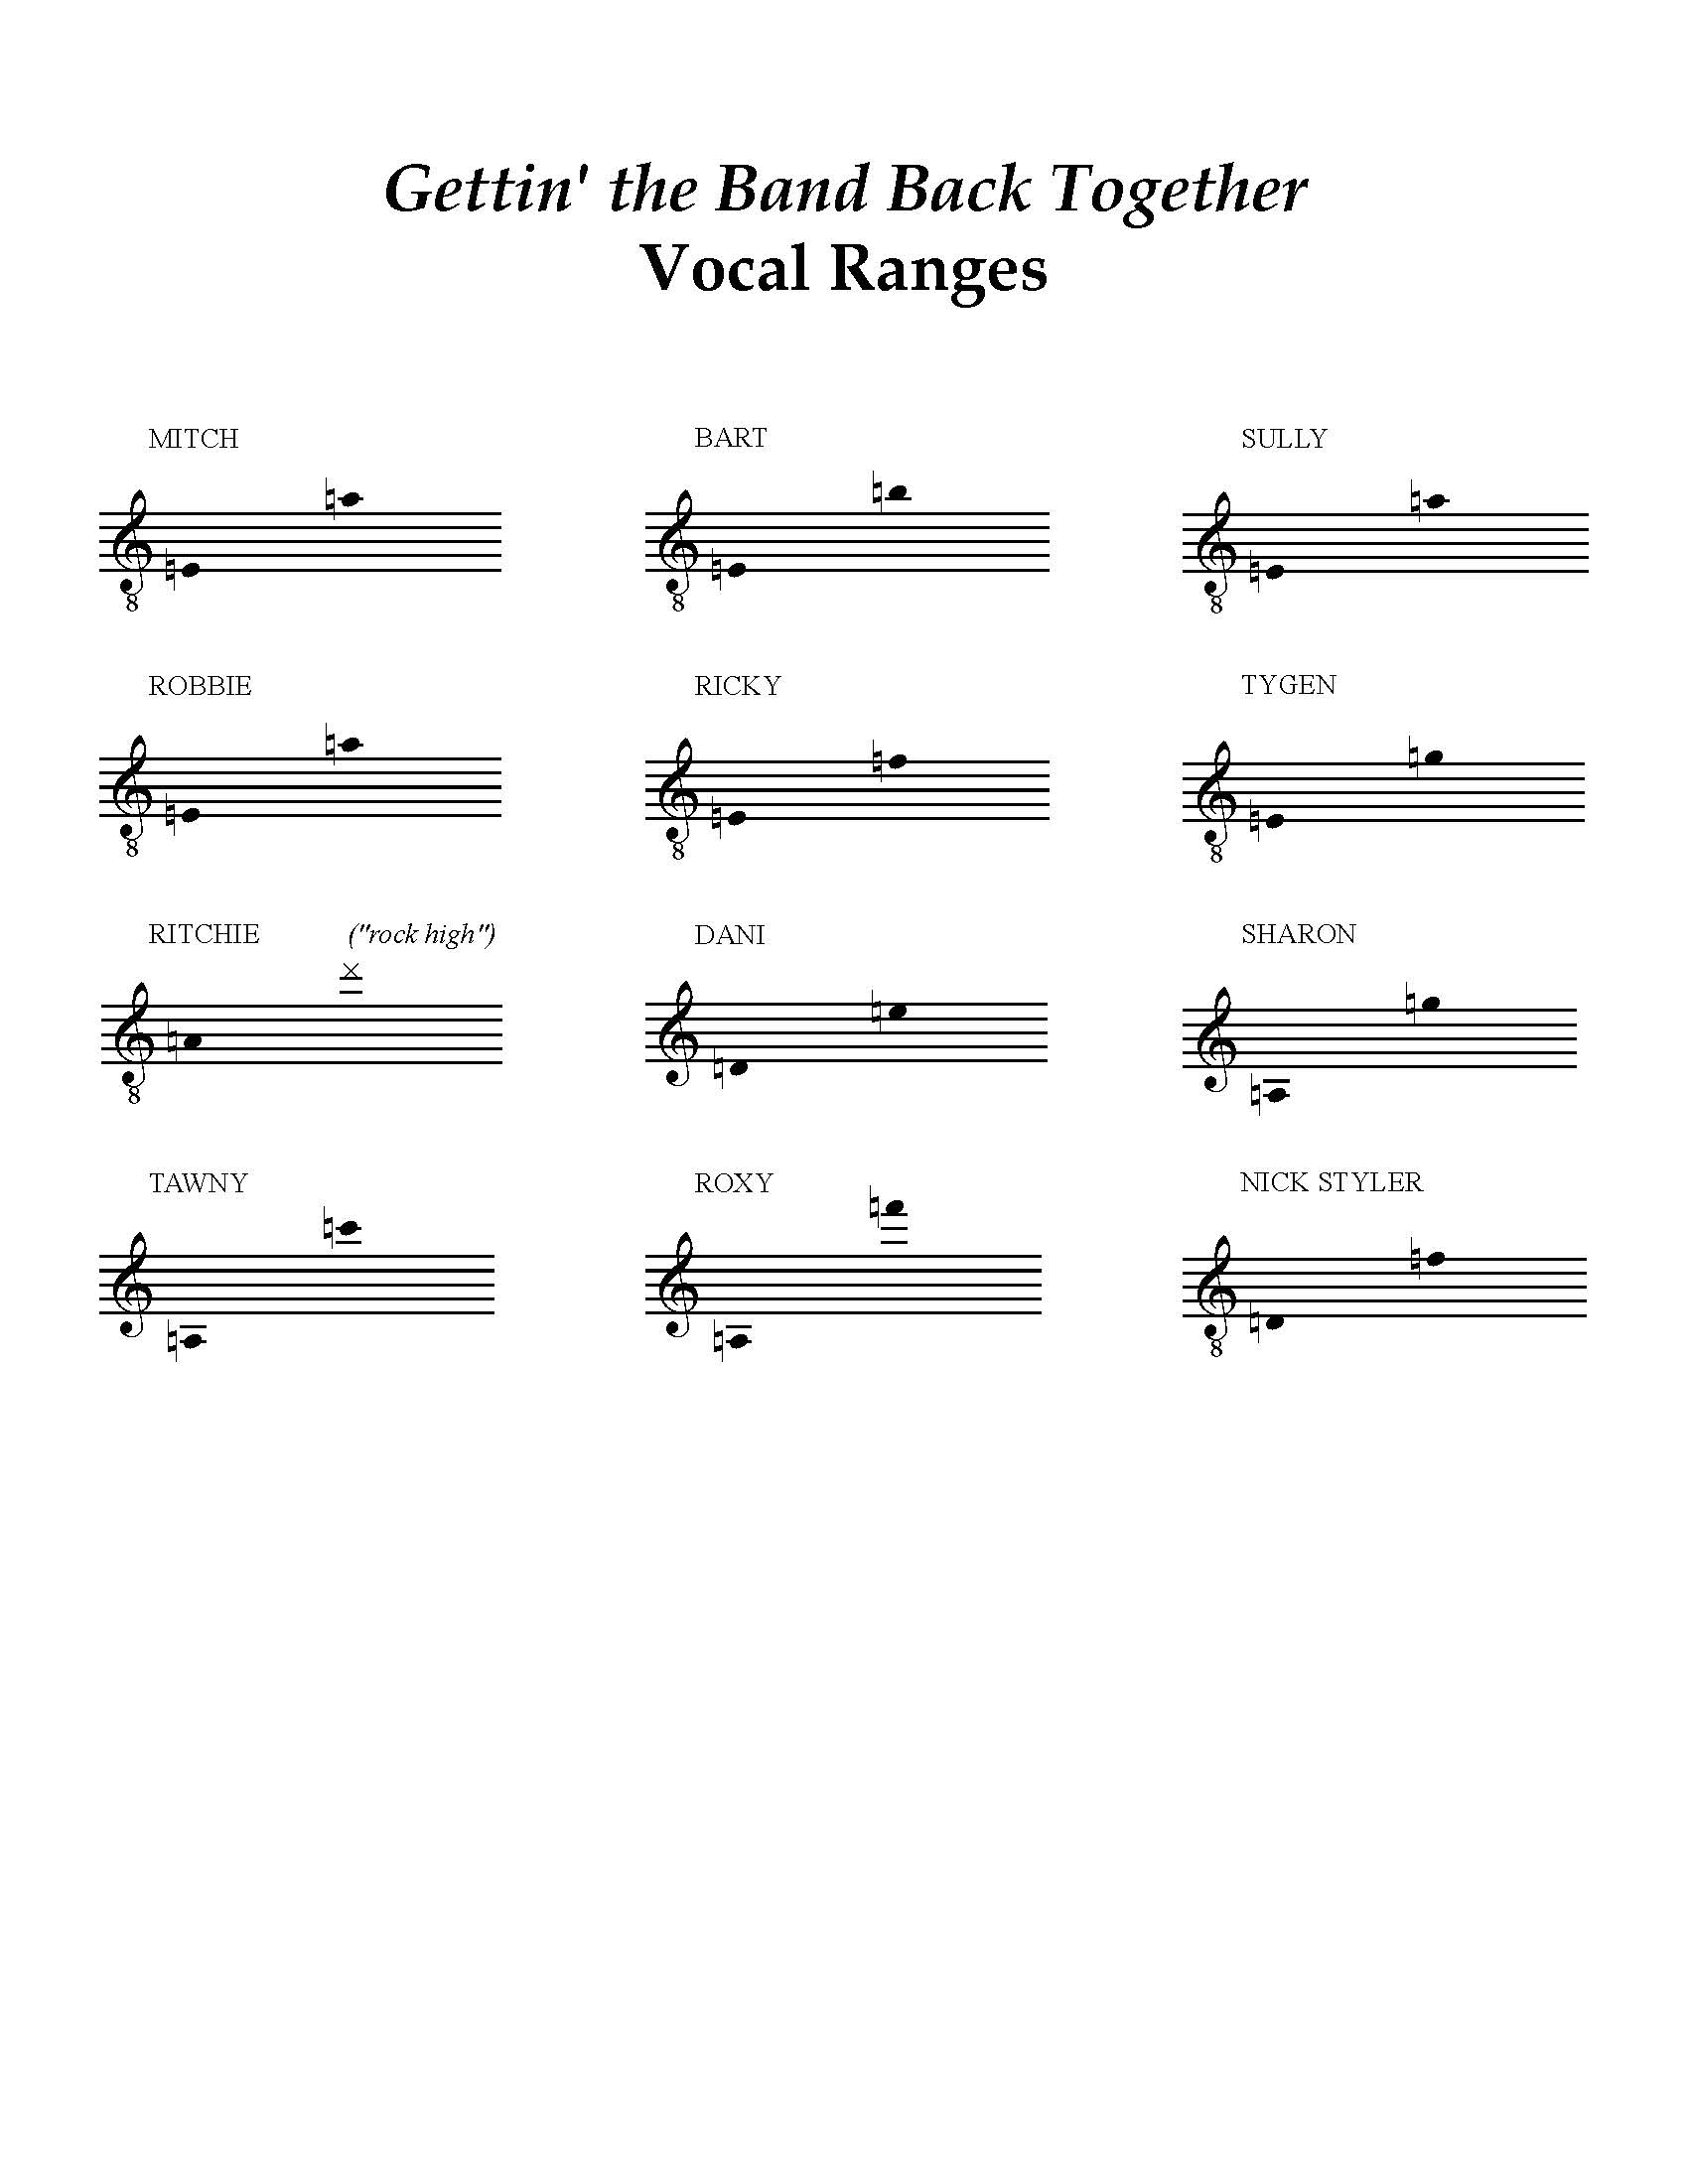 Gettin' the Band Back Together Vocal Ranges